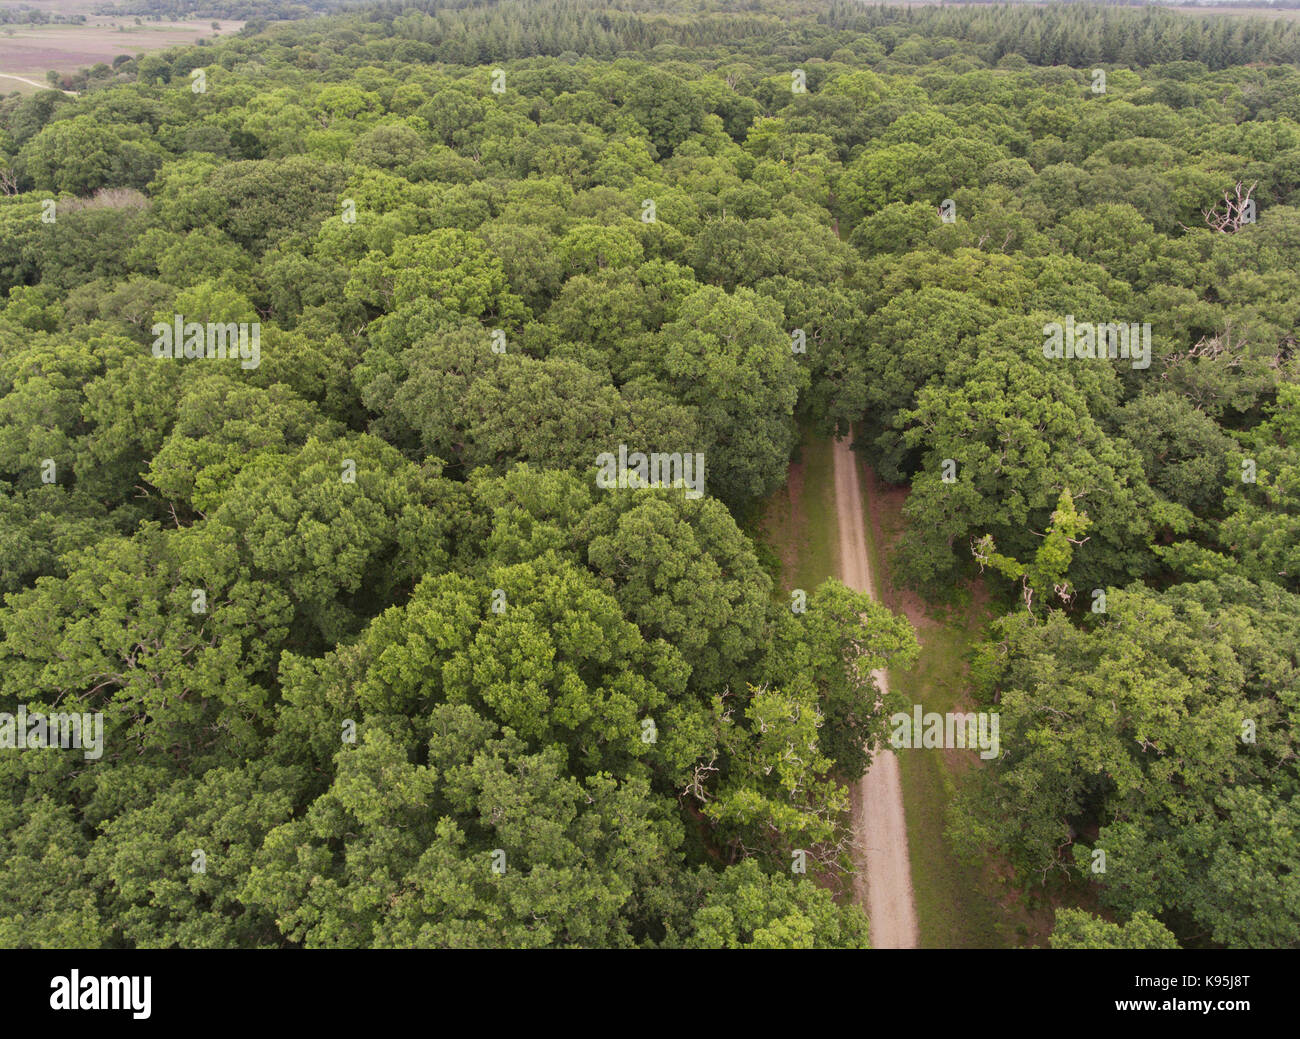 Aerial view of a walking path in the middle of green oak woodland in New Forest, United Kingdom . - Stock Image